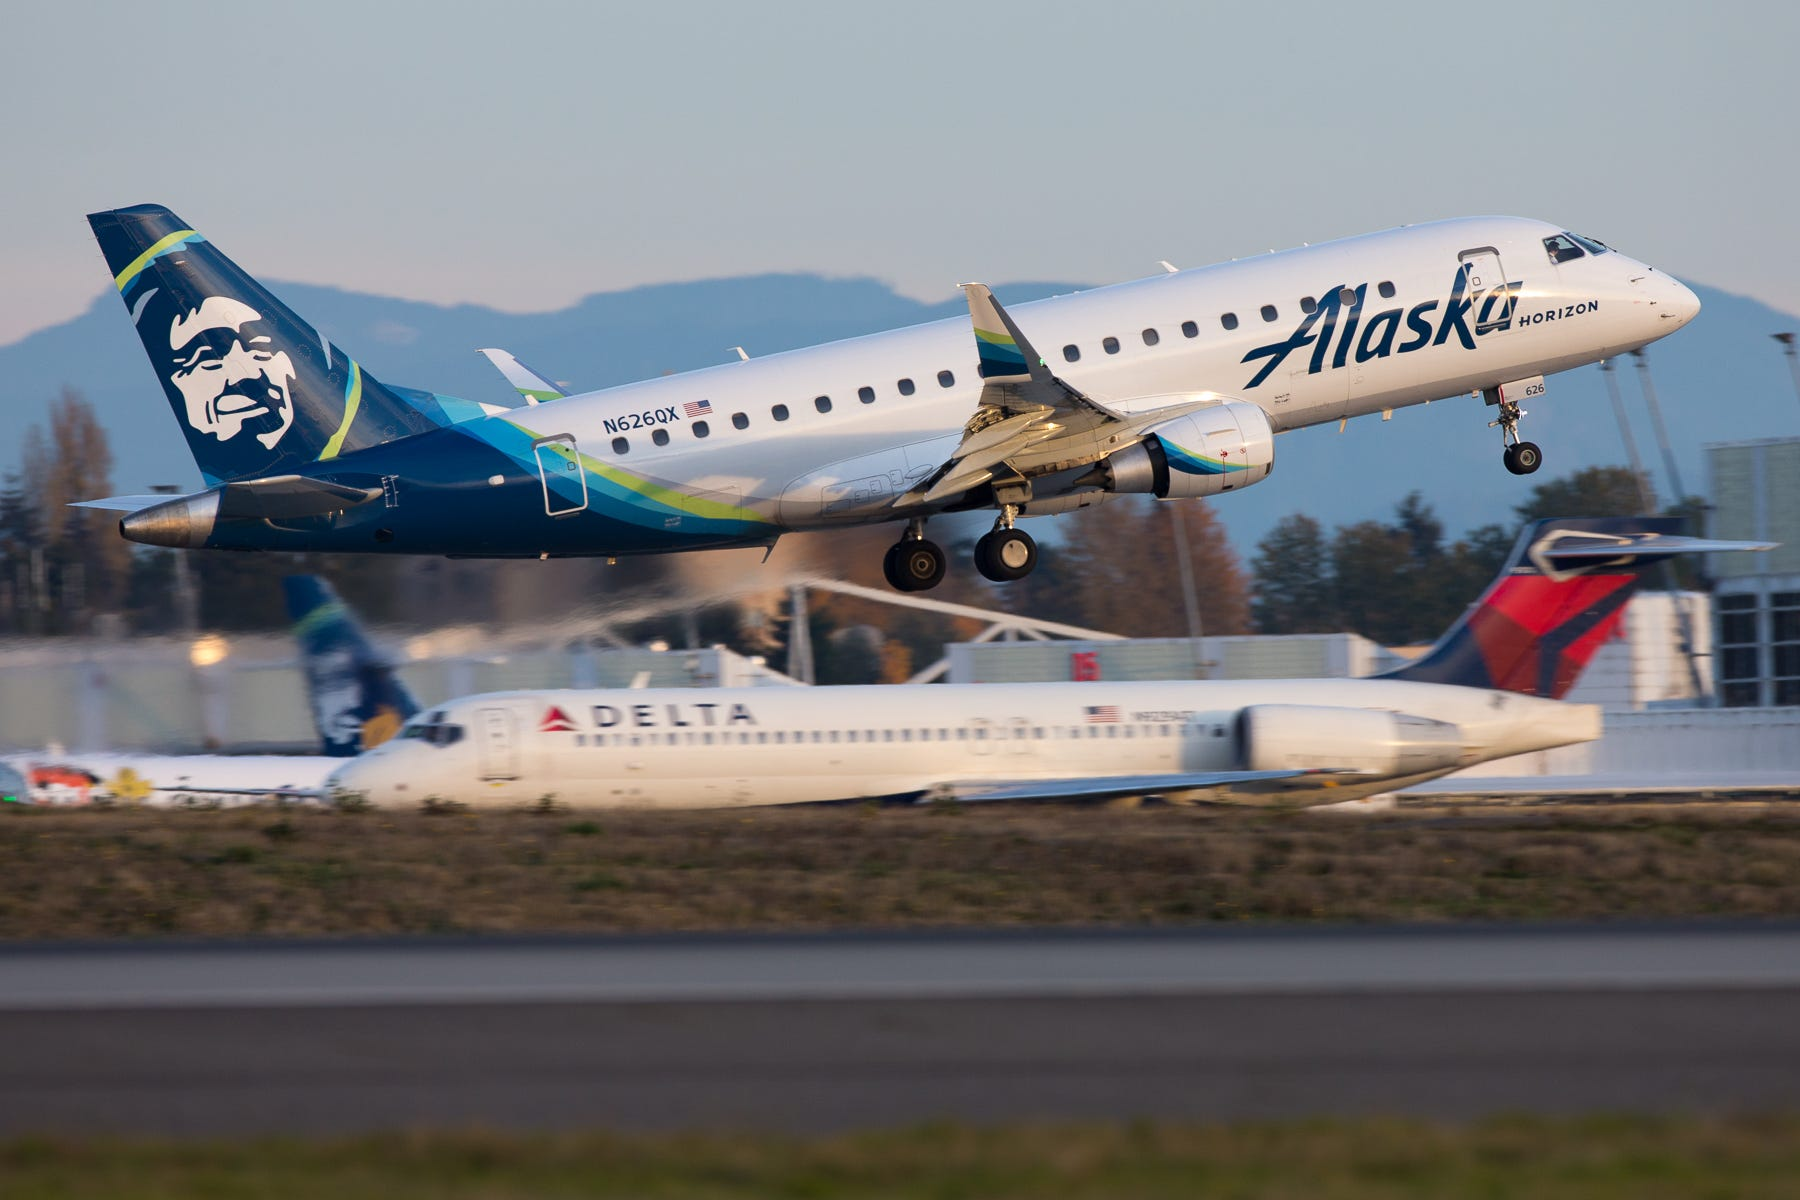 An Alaska Airlines/Horizon Air Embraer E170 takes off from Seattle-Tacoma International Airport in November 2018.